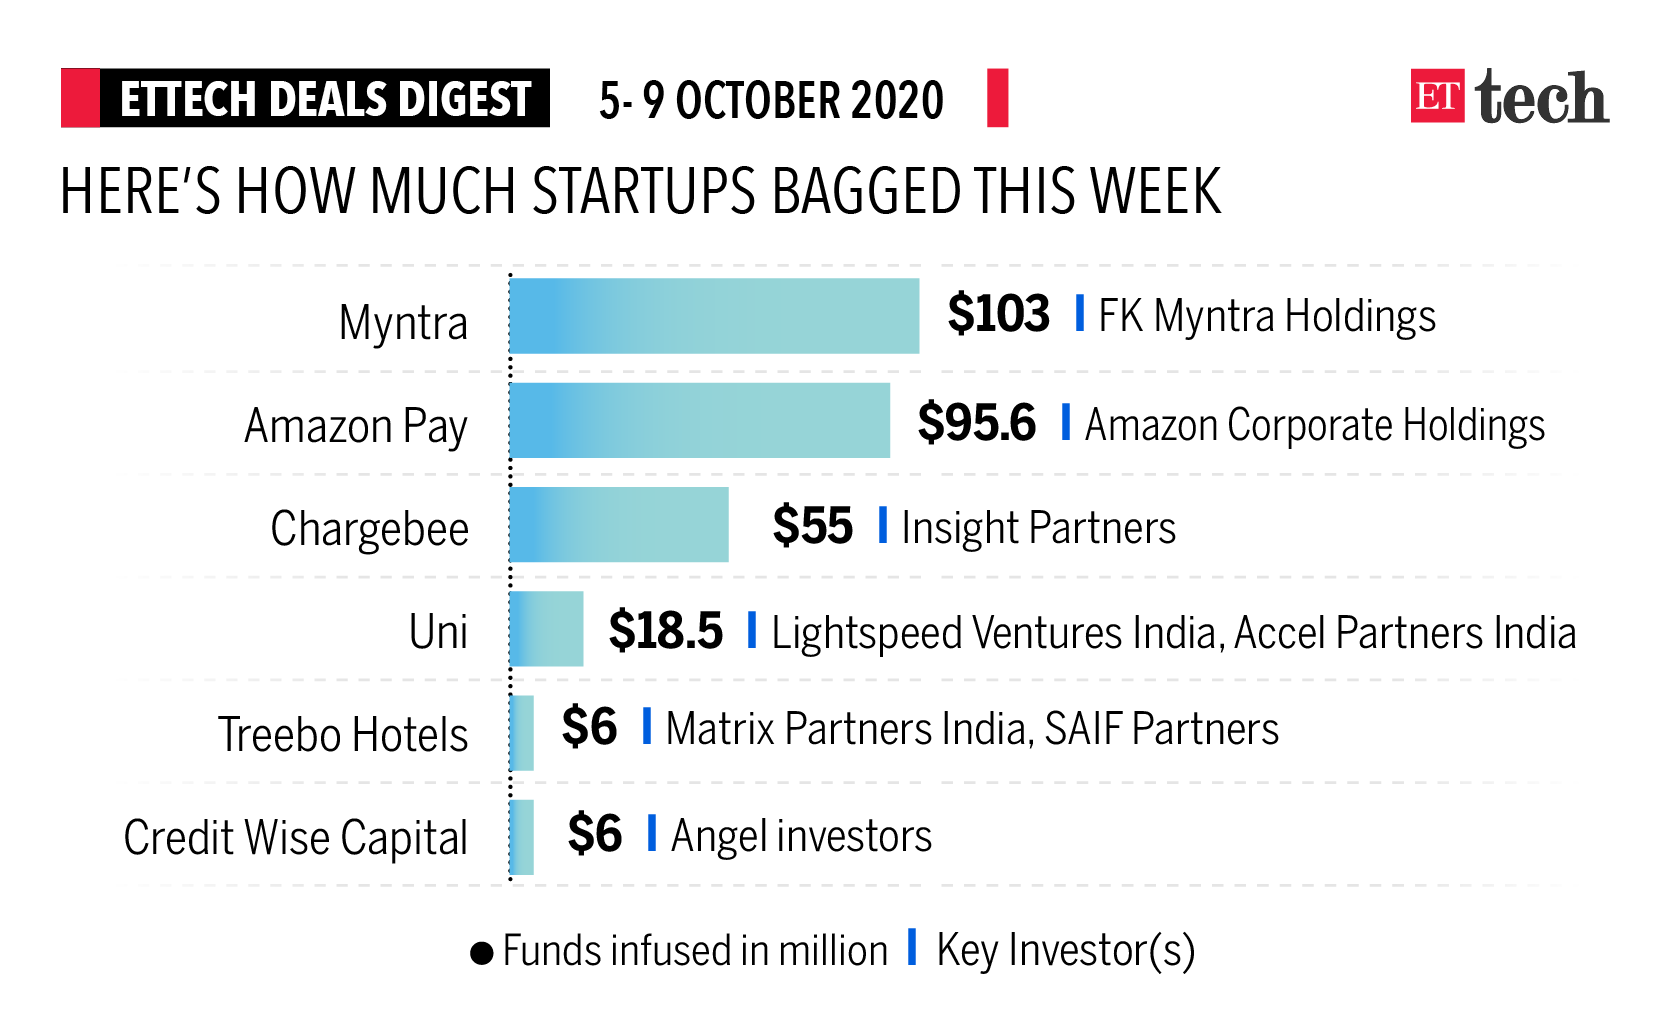 ETtech Deals Digest: Chargebee, Uni raise funds this week